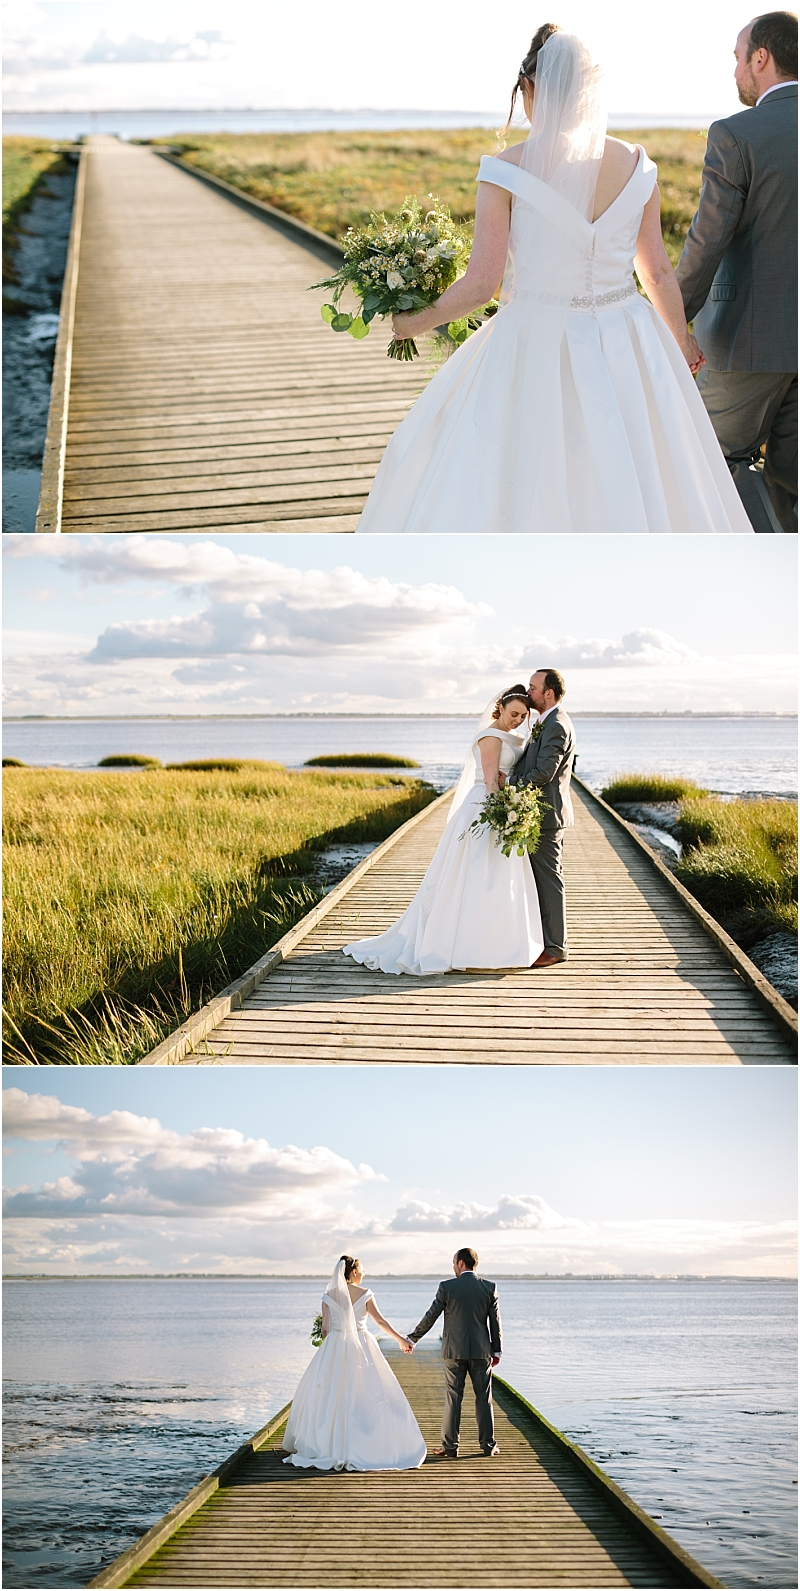 Wedding photographer st annes Lytham